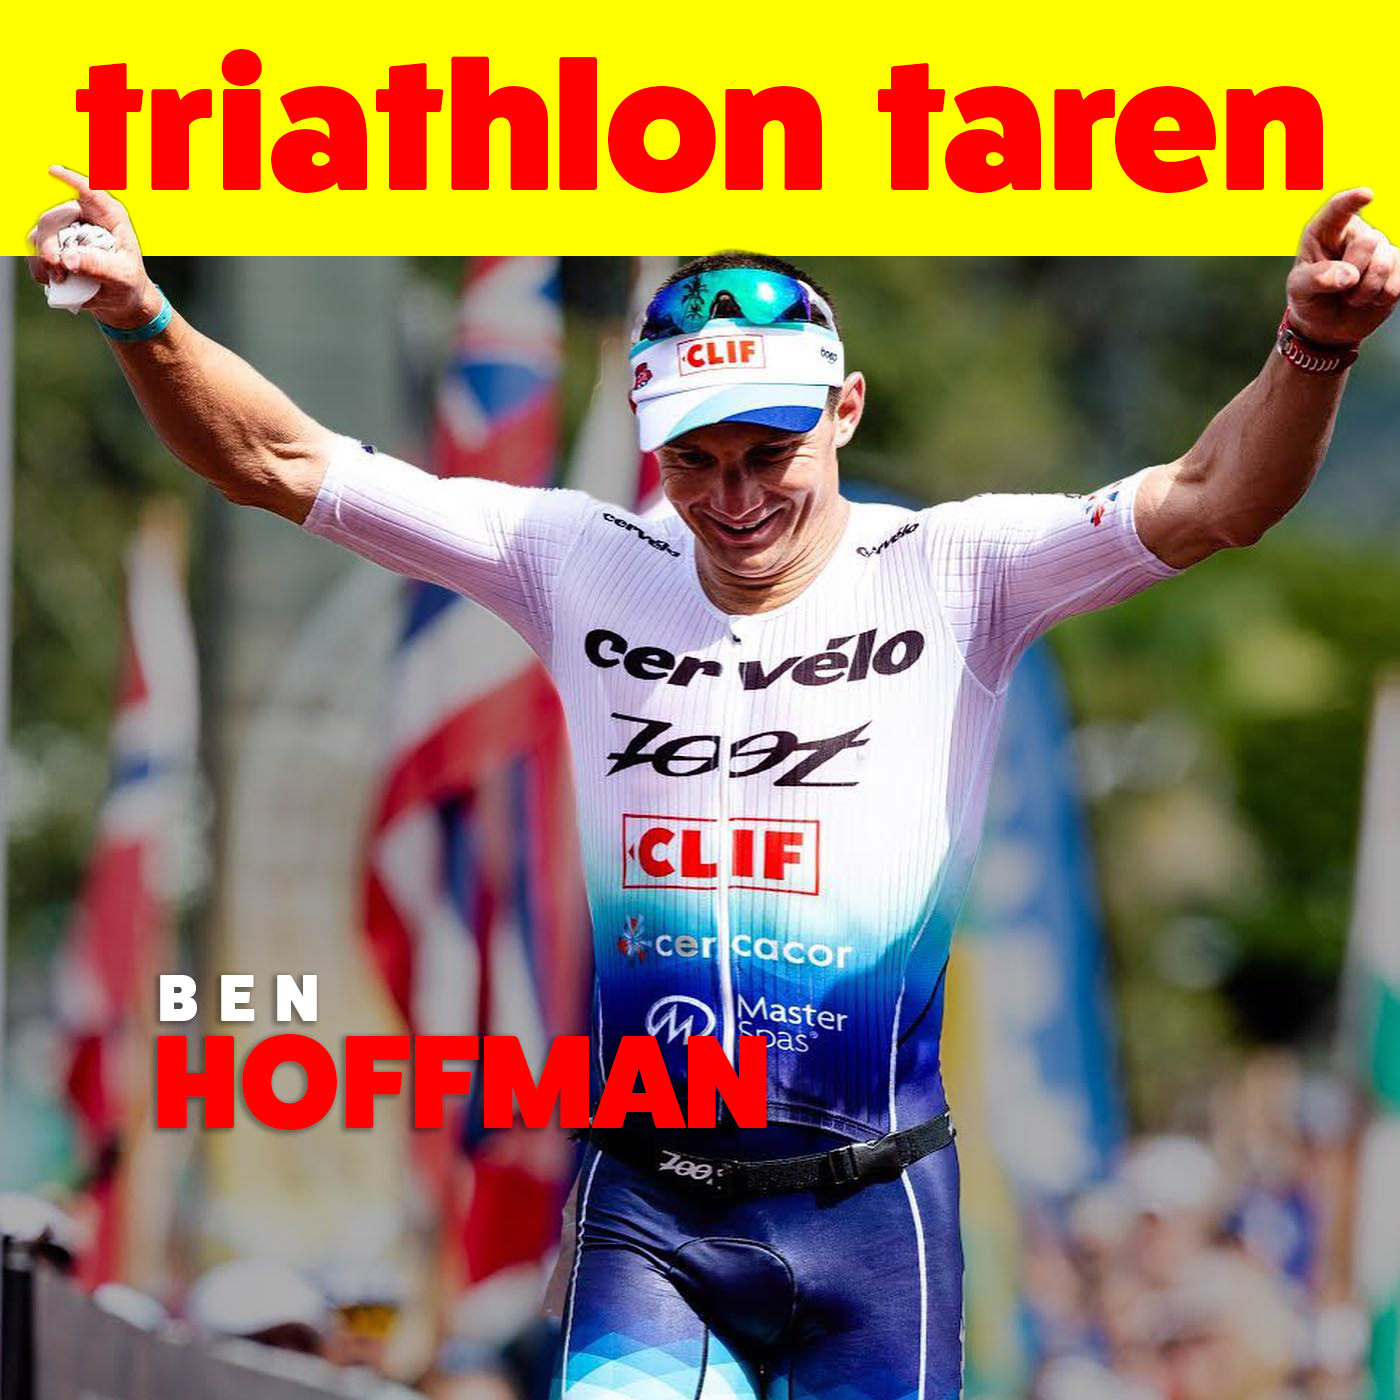 Ben Hoffman Has A New Outlook On His Triathlon Life